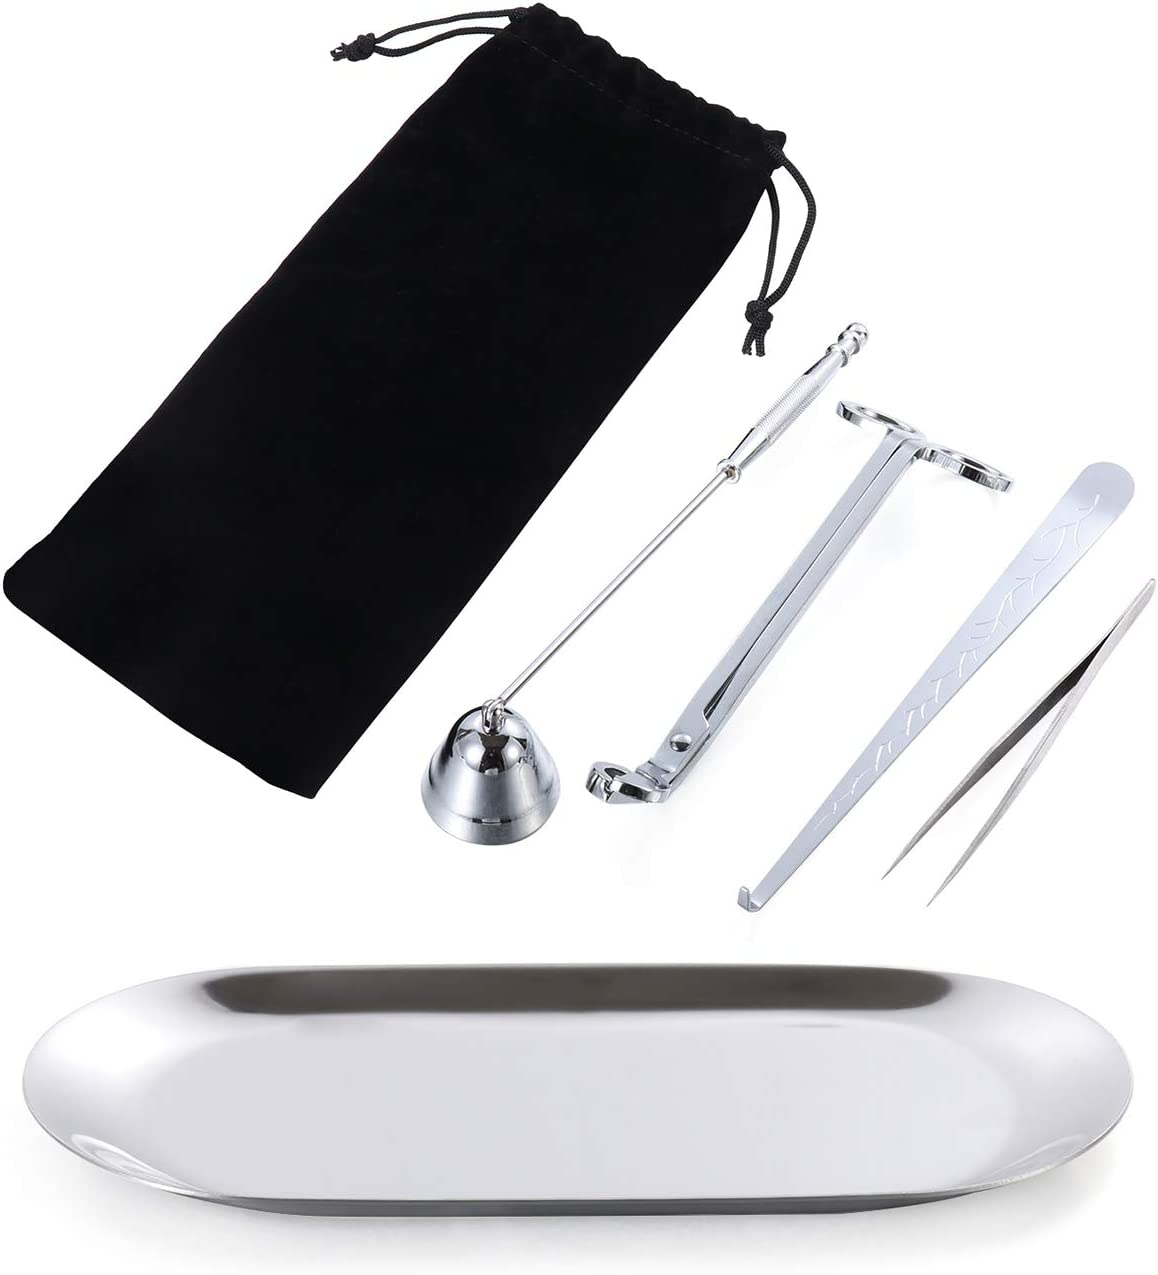 gootrades 6 in 1 Candle Wick Trimmer Candle Snuffer Candle Accessories Set Stainless Steel Dipper Tweezers Storage Bag Home Living Tool